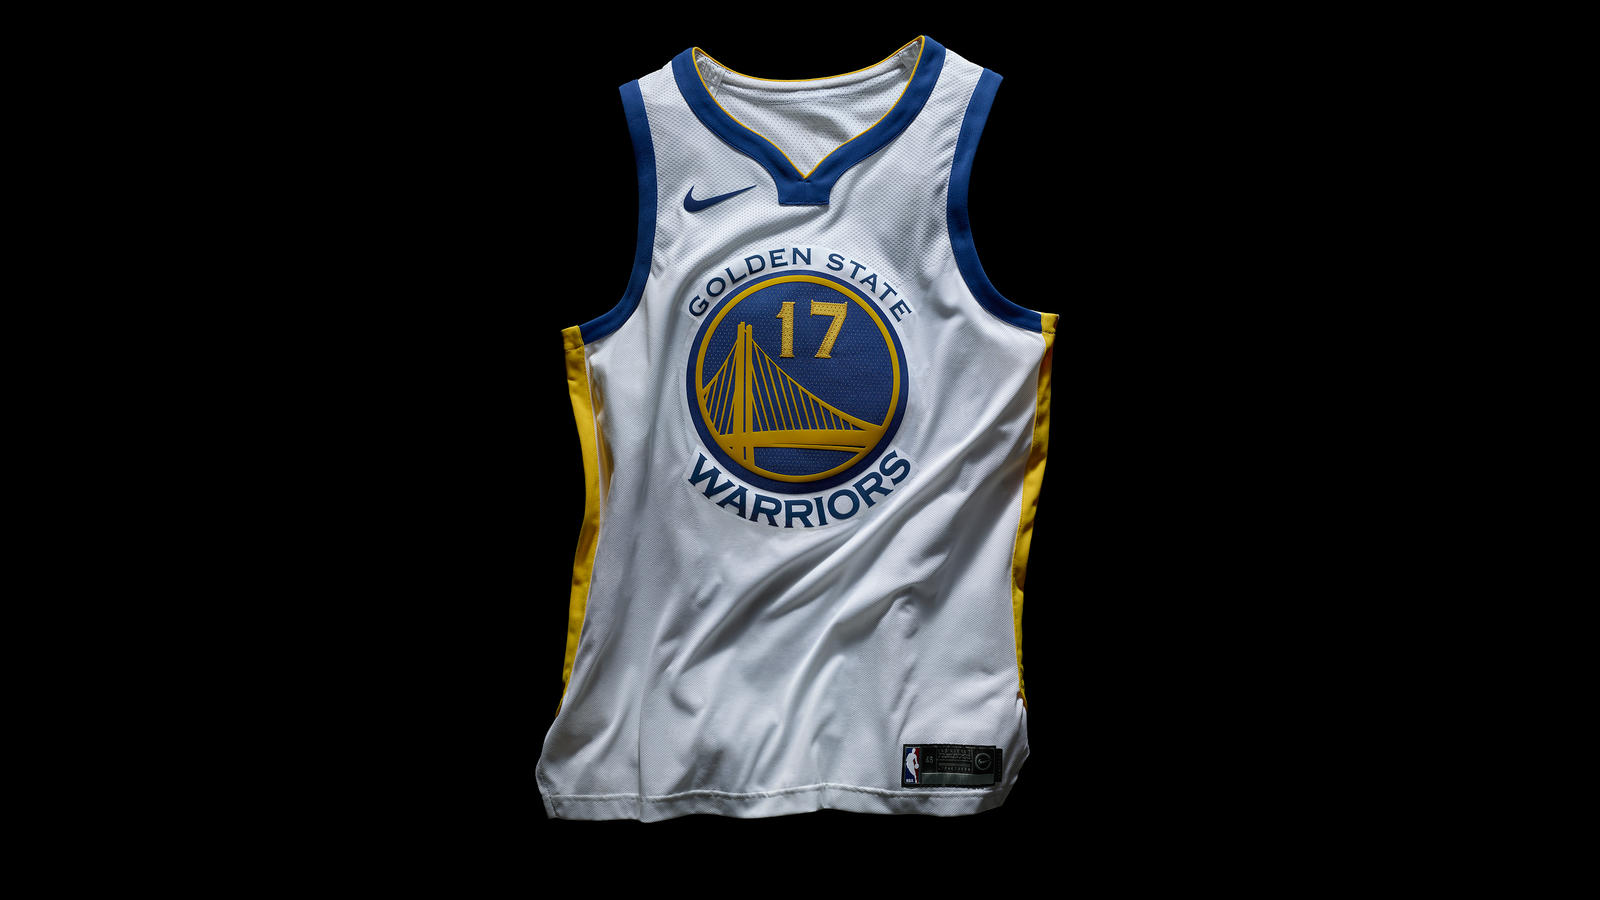 Nike-Basketball-Golden-State-Jersey-Uniform_hd_1600